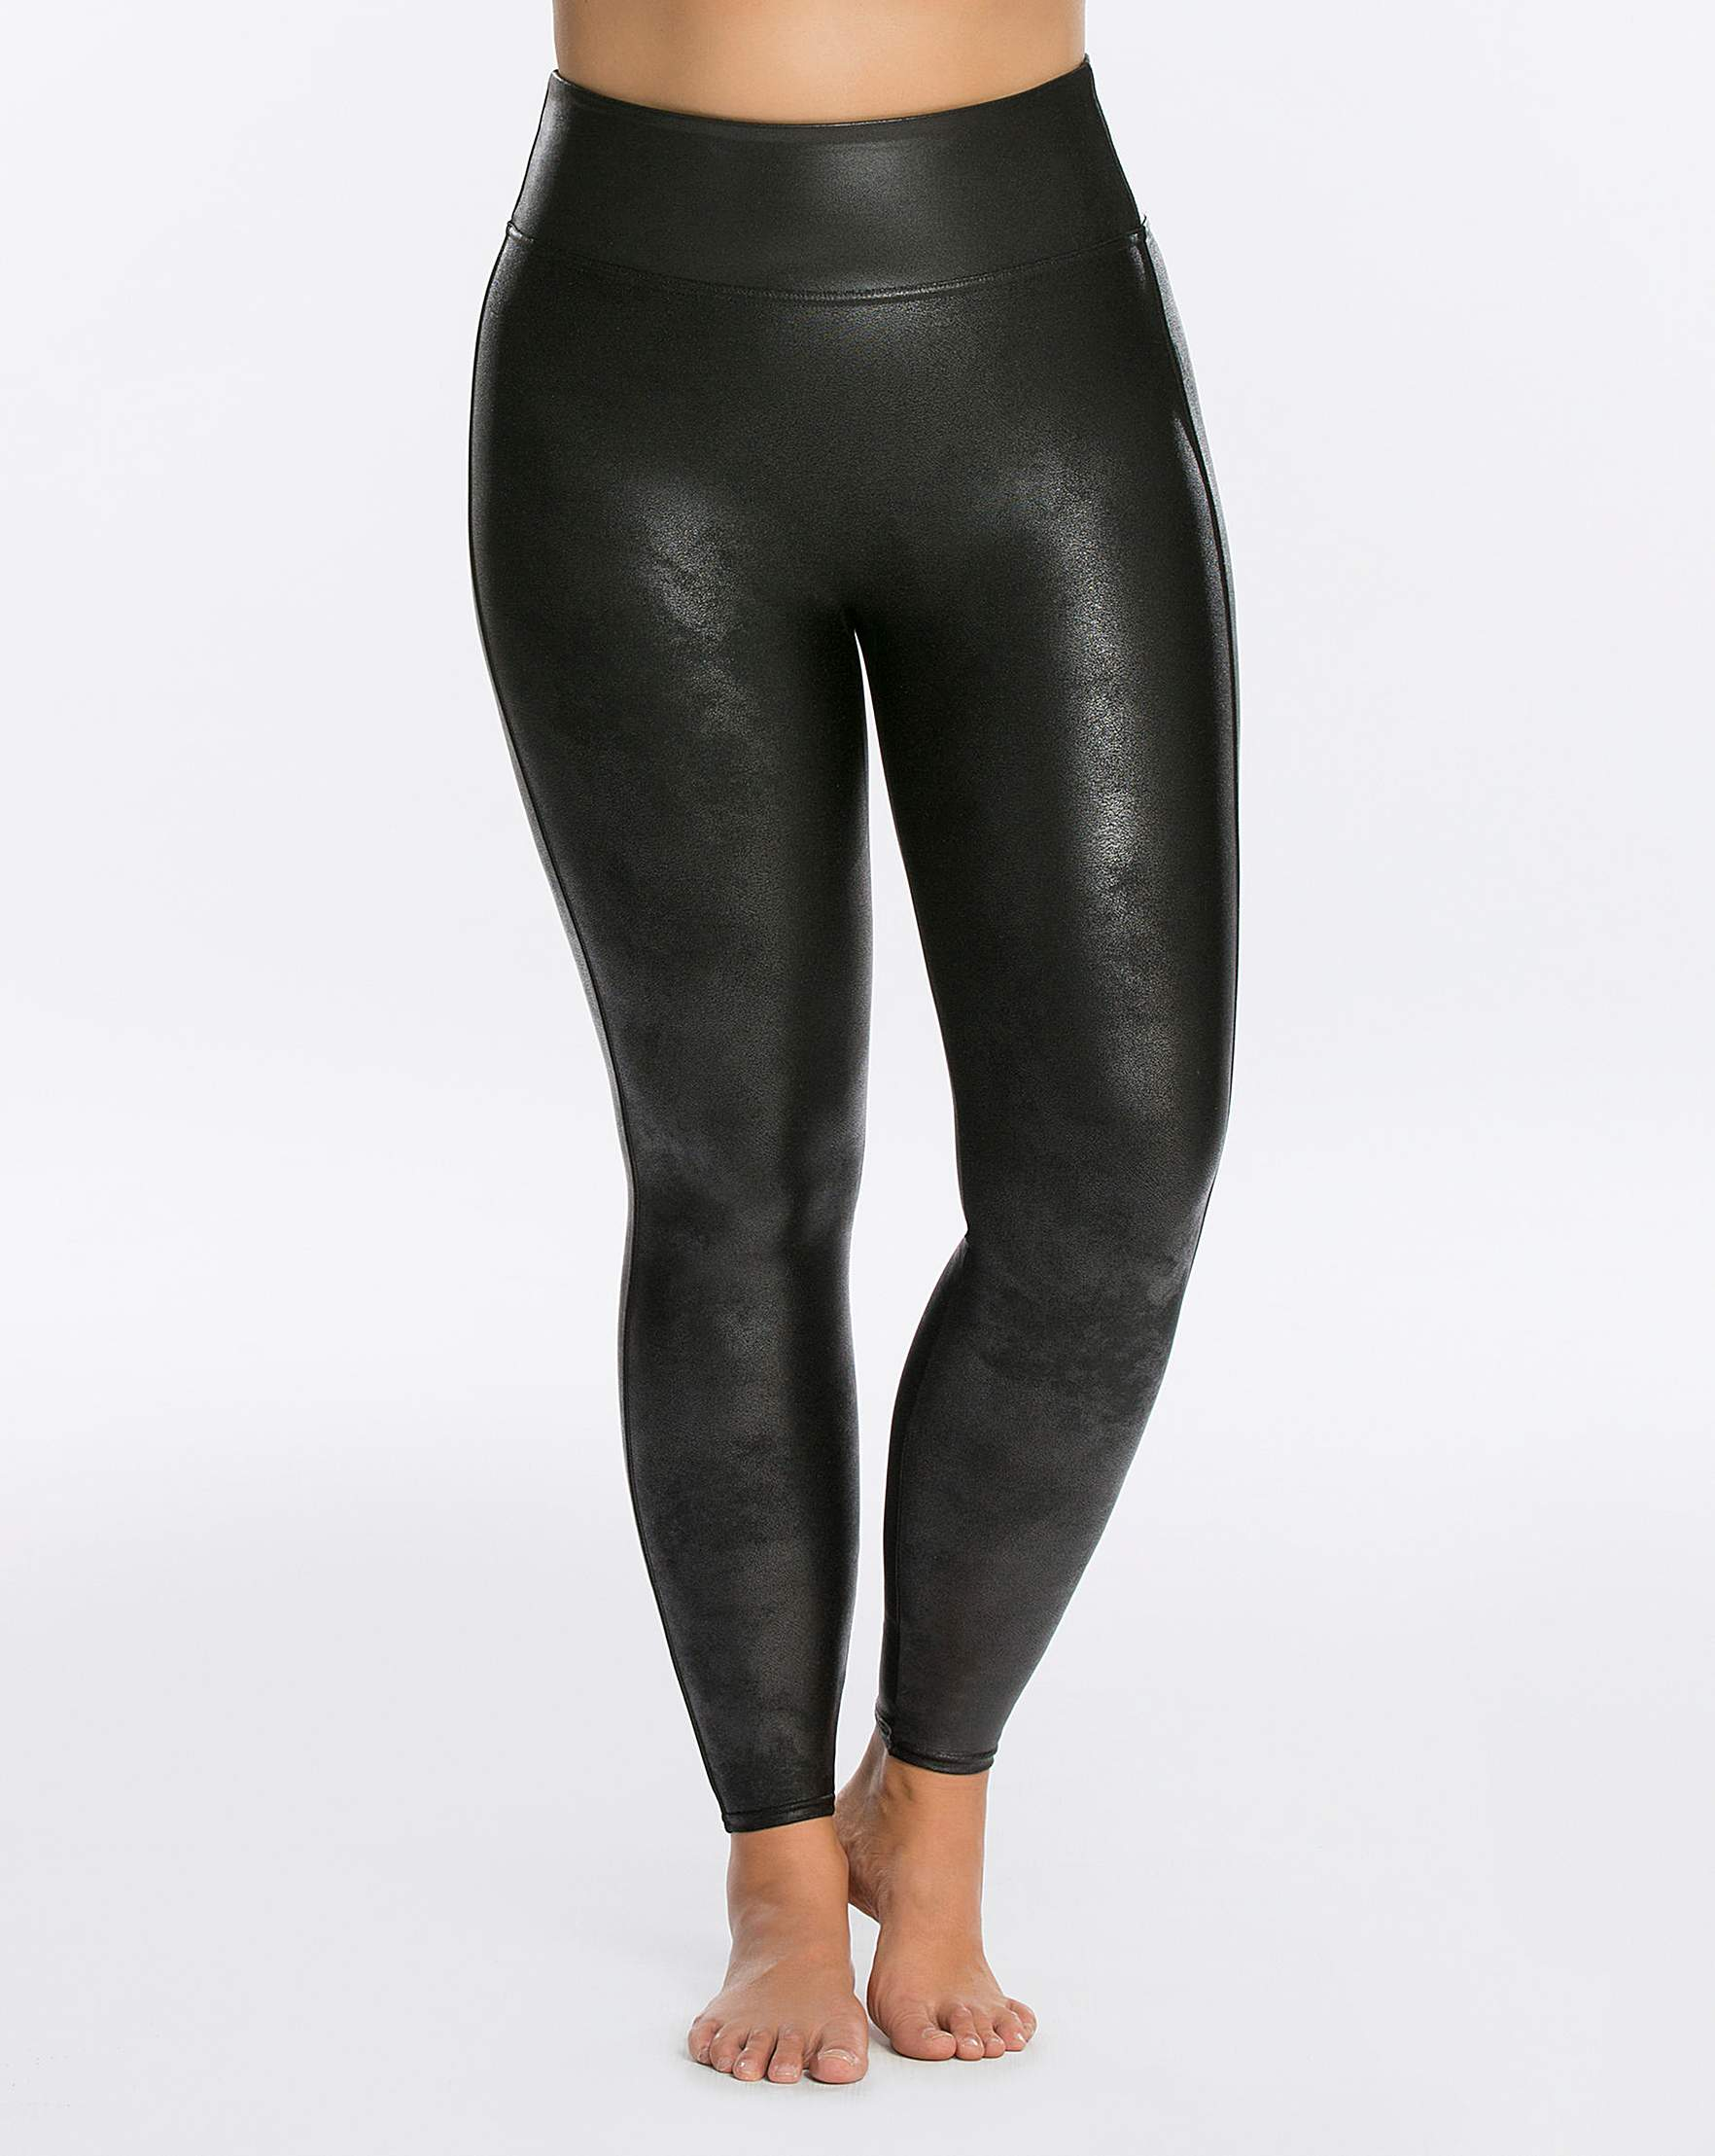 058162b65cd3a2 Spanx Faux Leather Leggings | Simply Be